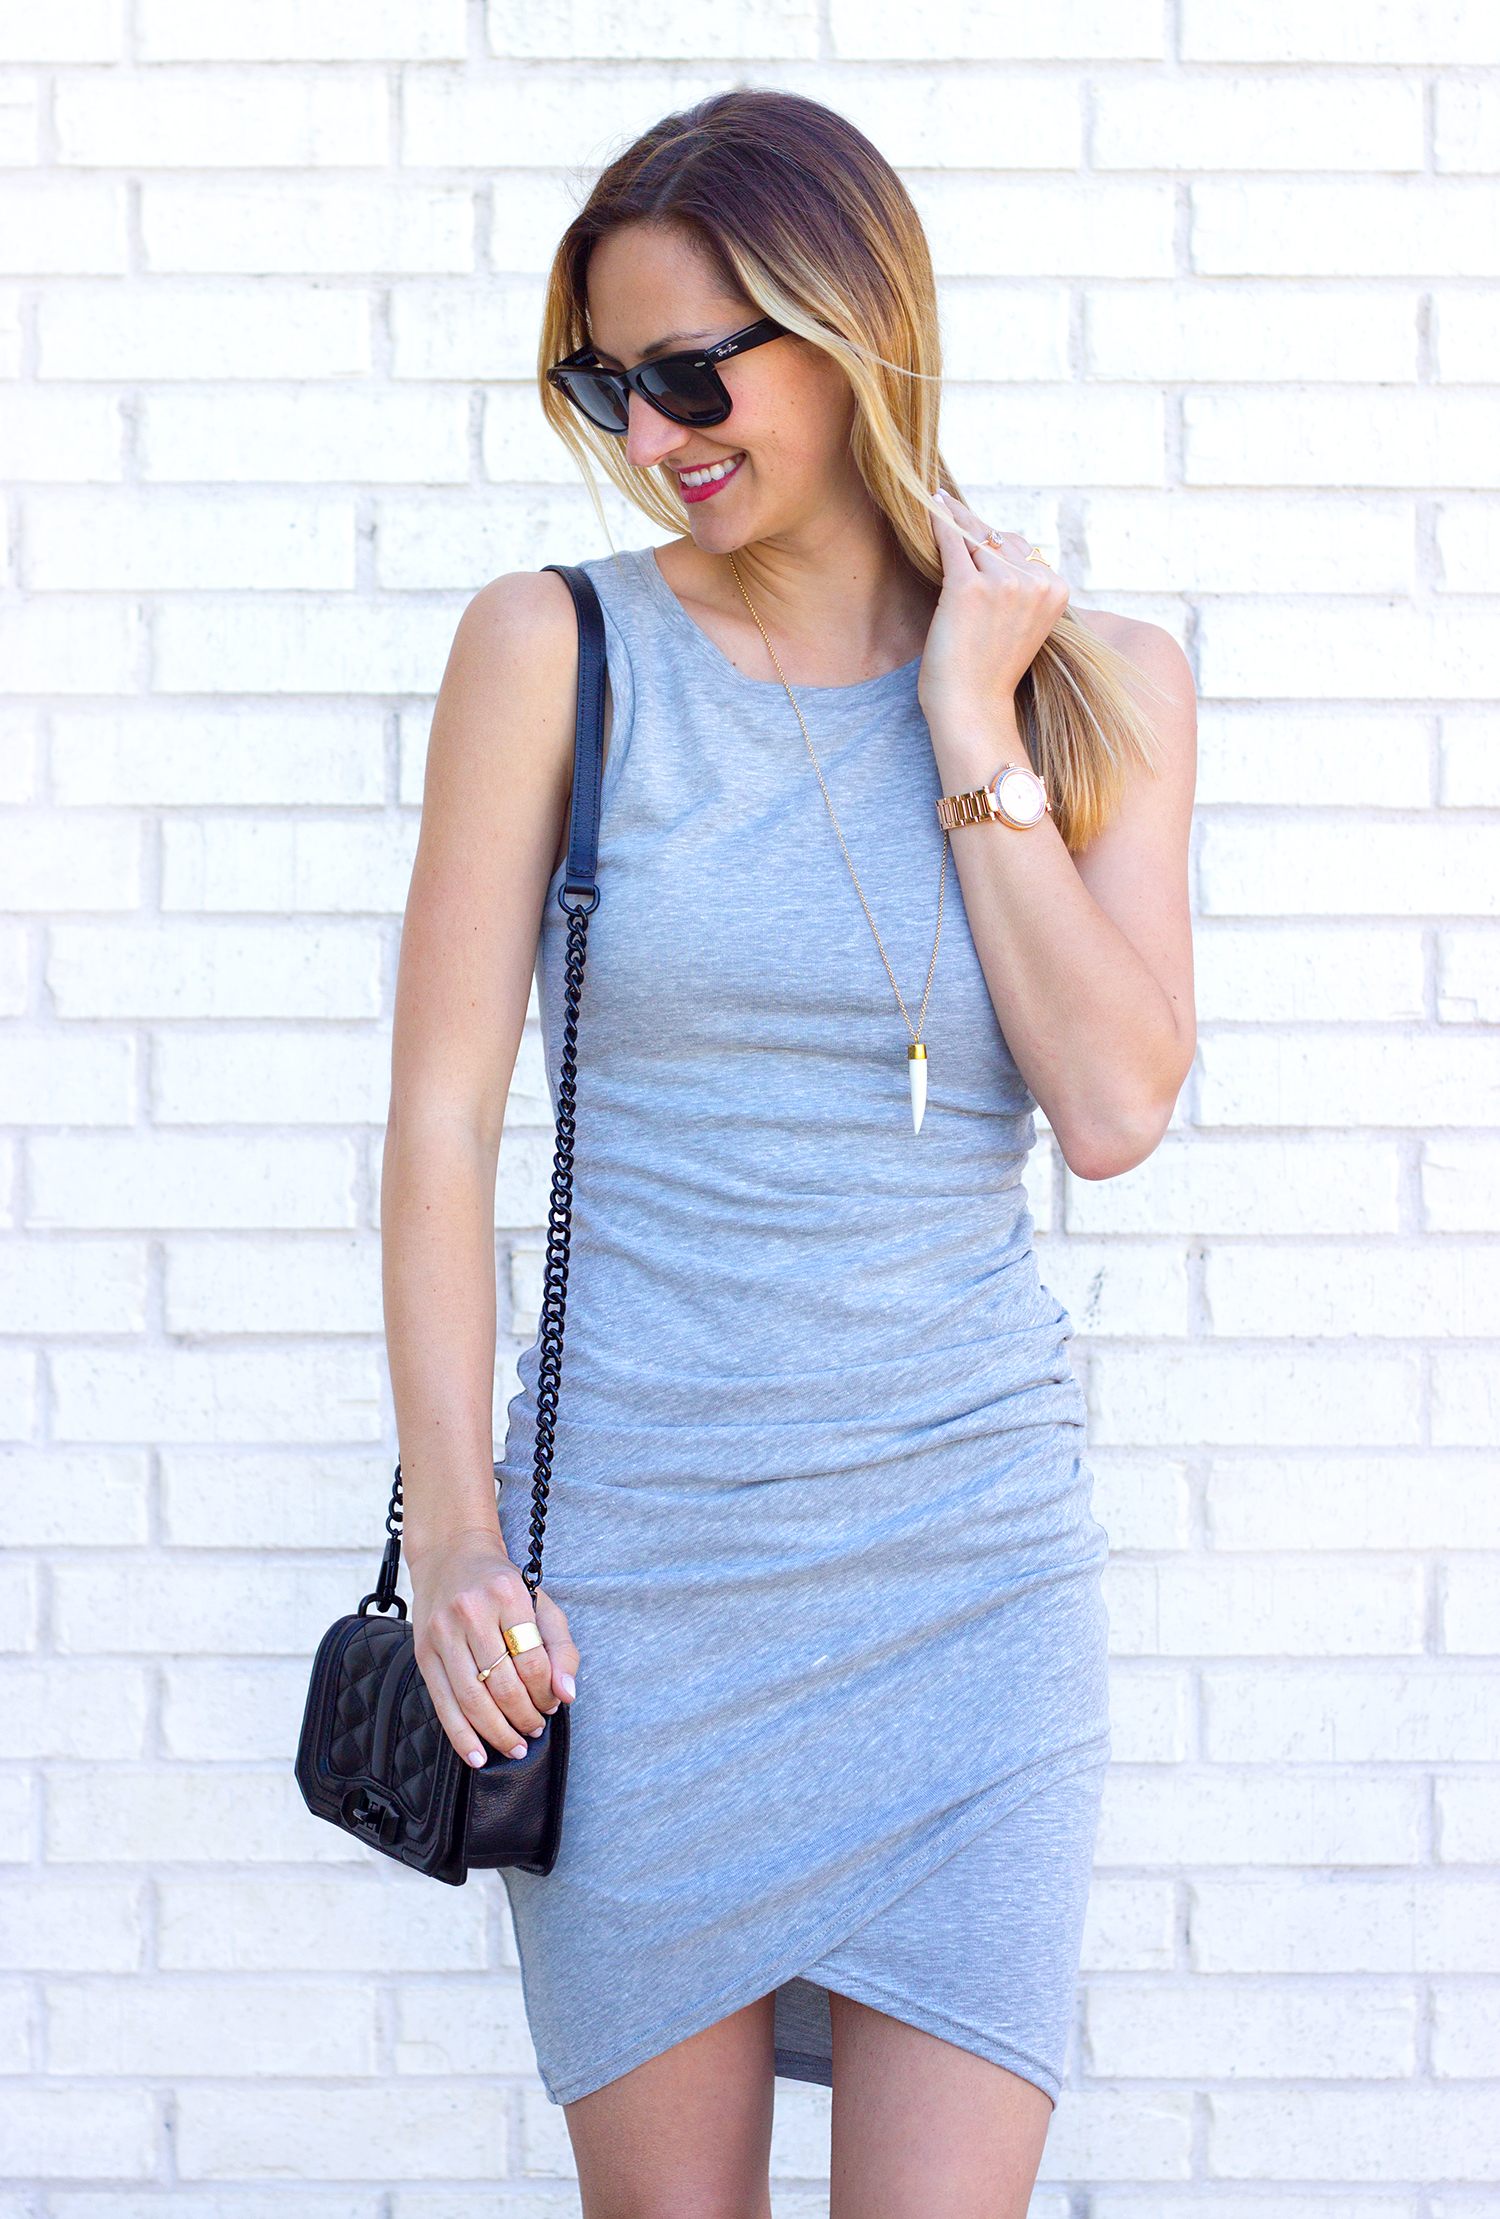 livvyland-blog-olivia-watson-leith-heather-grey-body-con-dress-toms-majorca-black-booties-austin-texas-fashion-blogger-spring-outfit-rayban-wayfarer-4